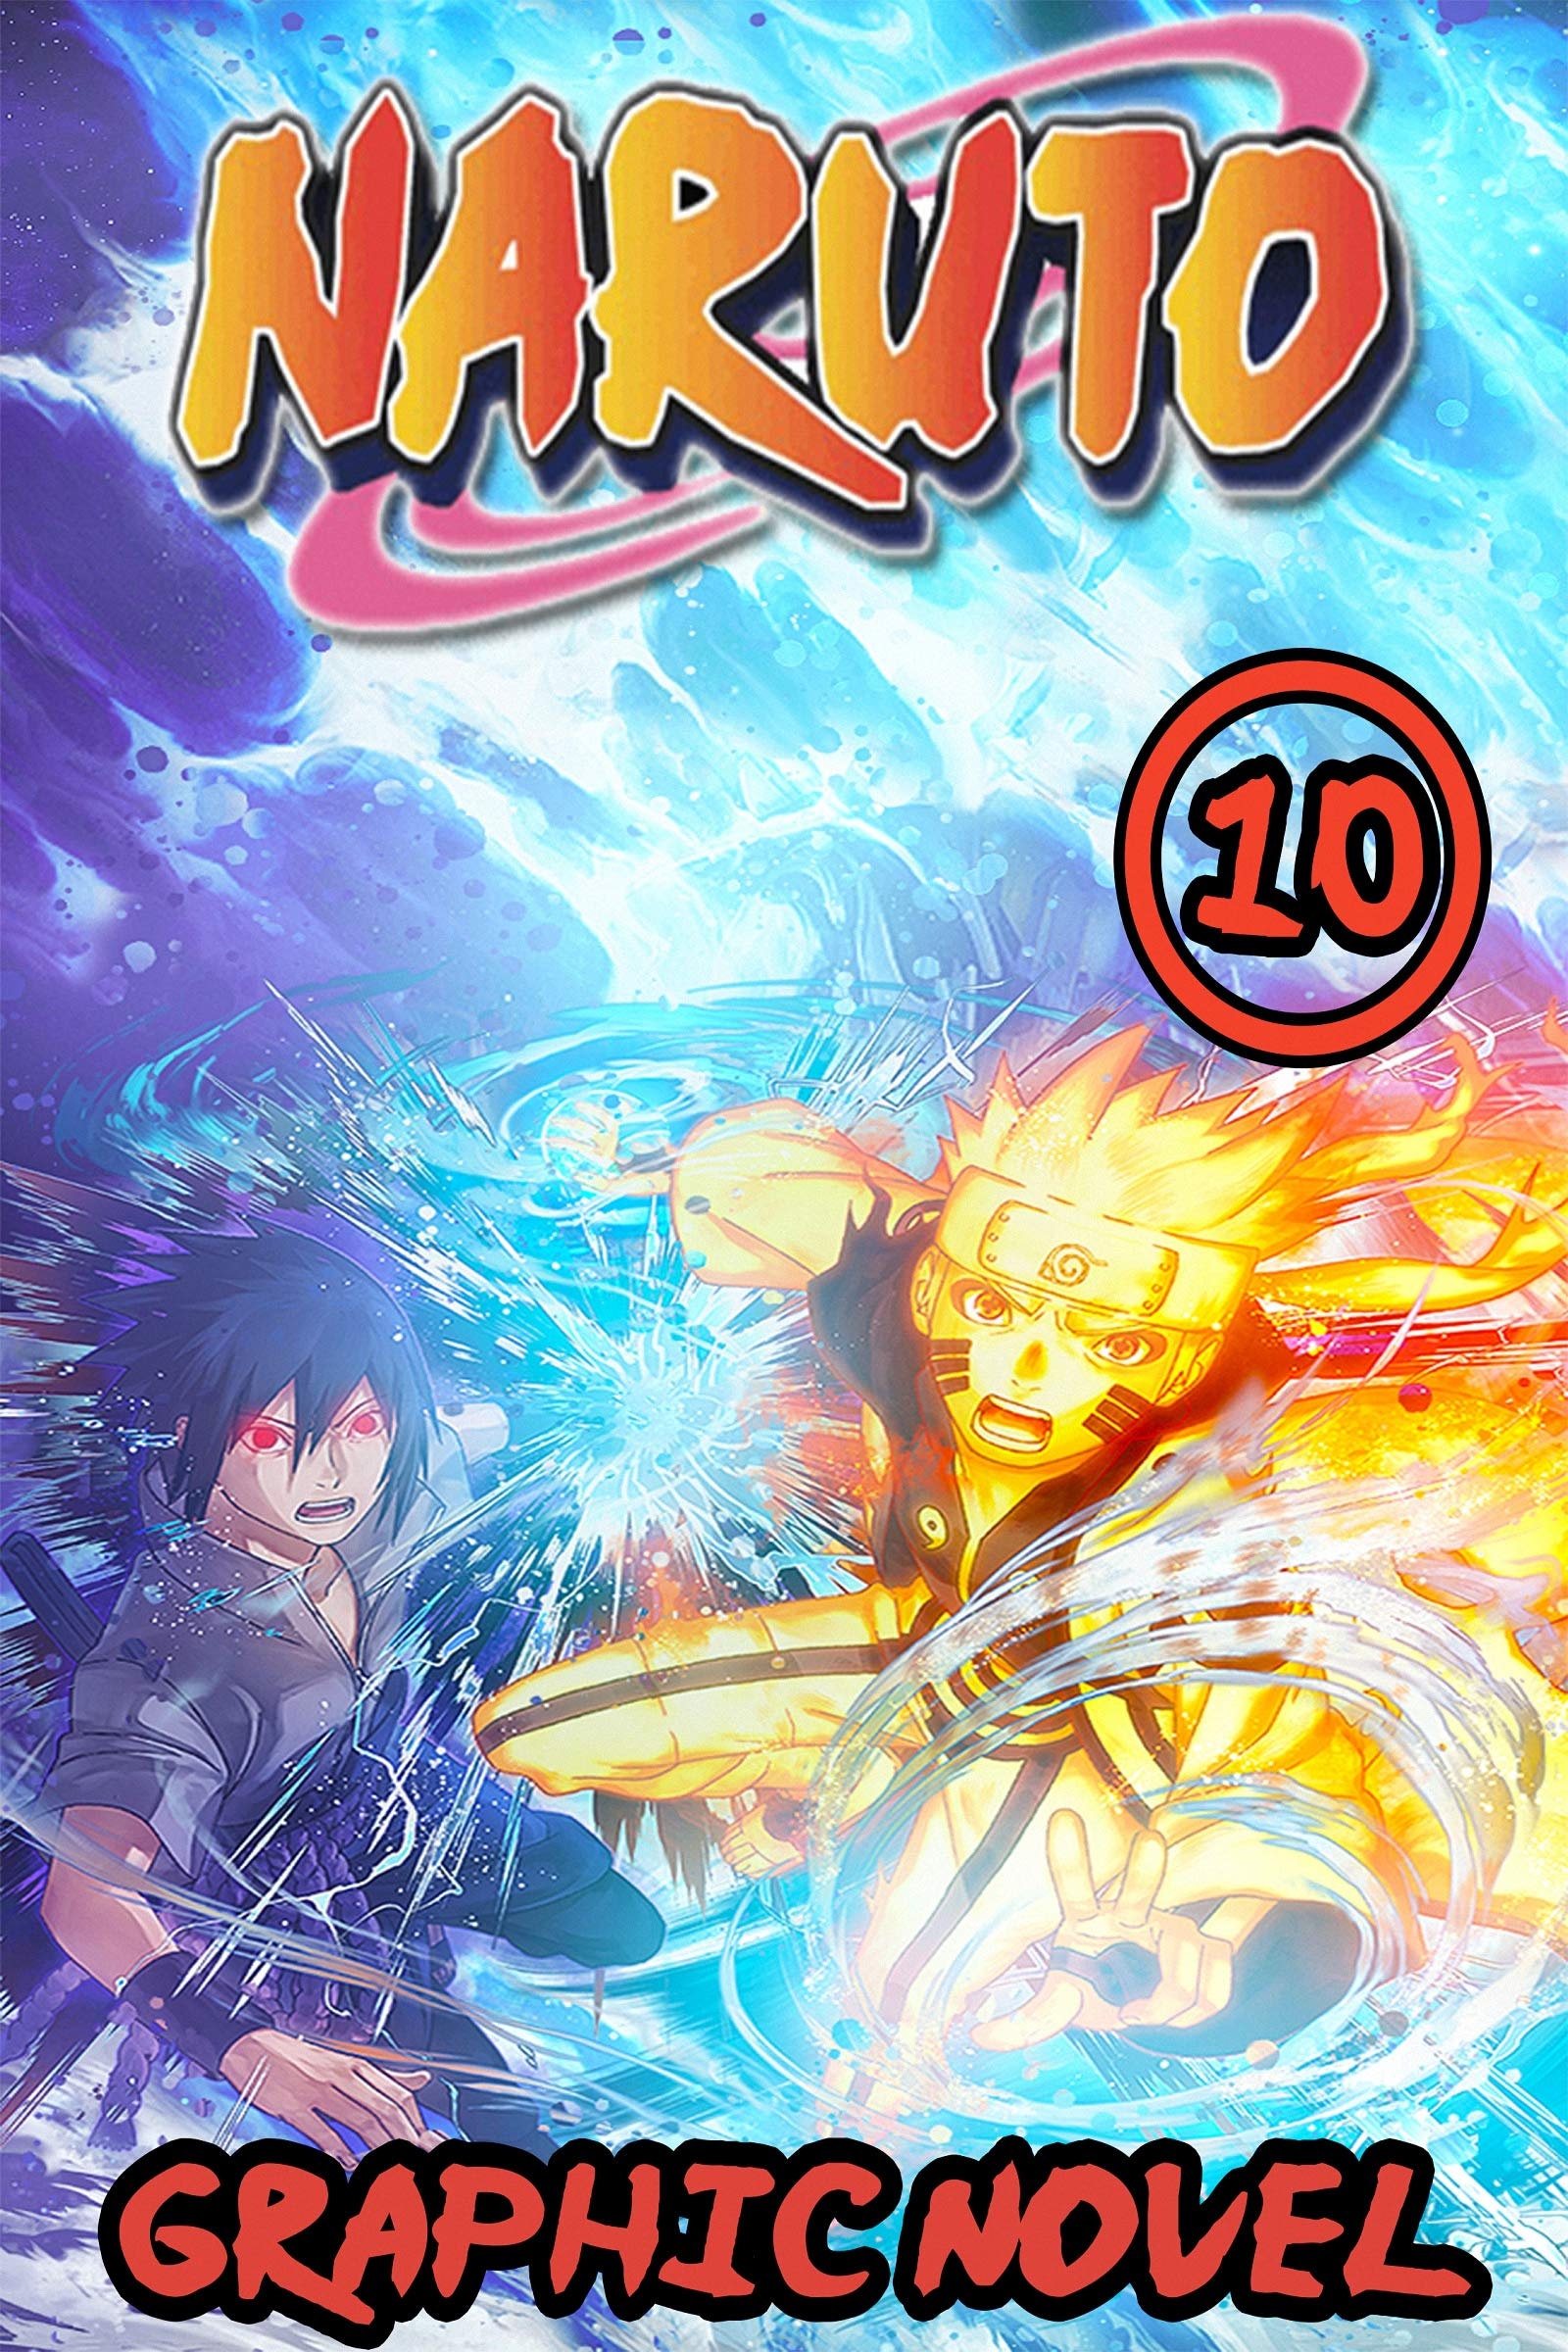 Naru: Book 10 Includes Vol 28 - 29 - 30 - Great Shonen Manga Naruto Action Graphic Novel For Adults, Teenagers, Kids, Manga Lover